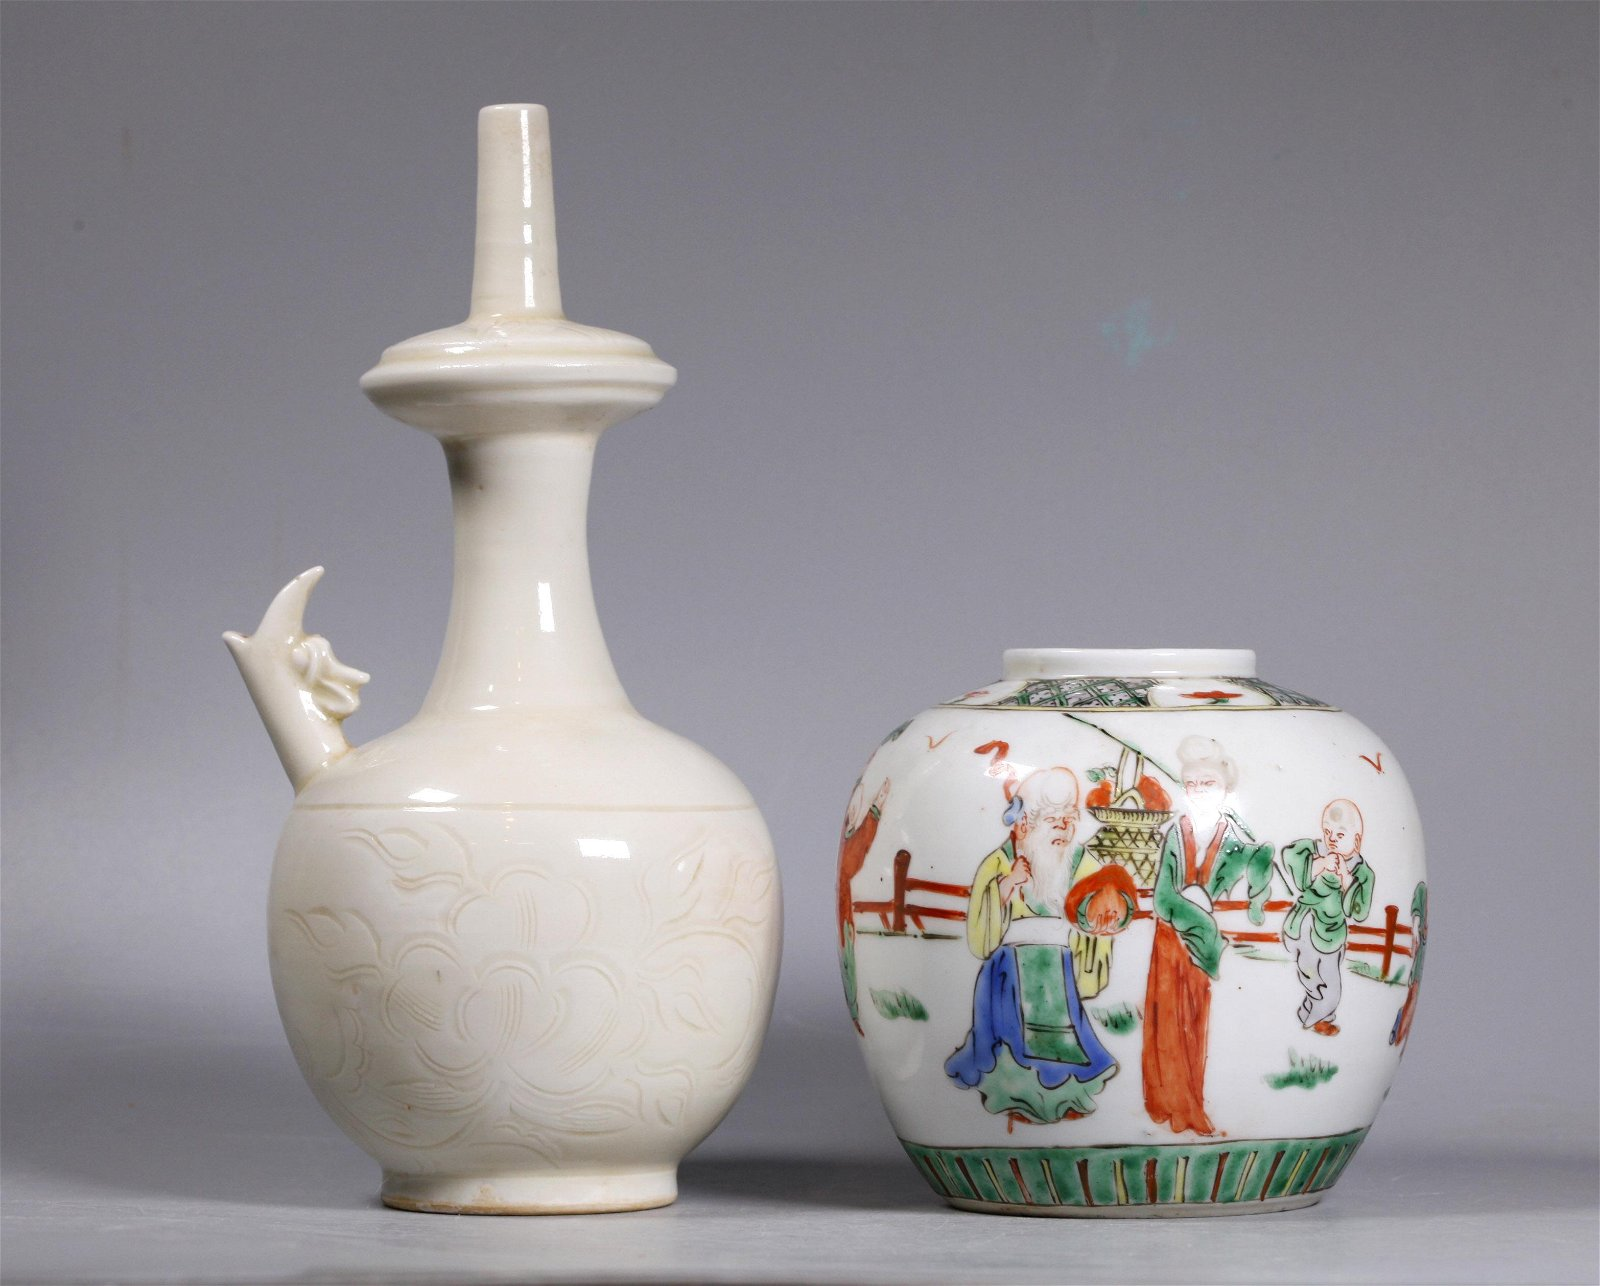 Chinese Dingyao Sprinkler; Enameled Porcelain Jar